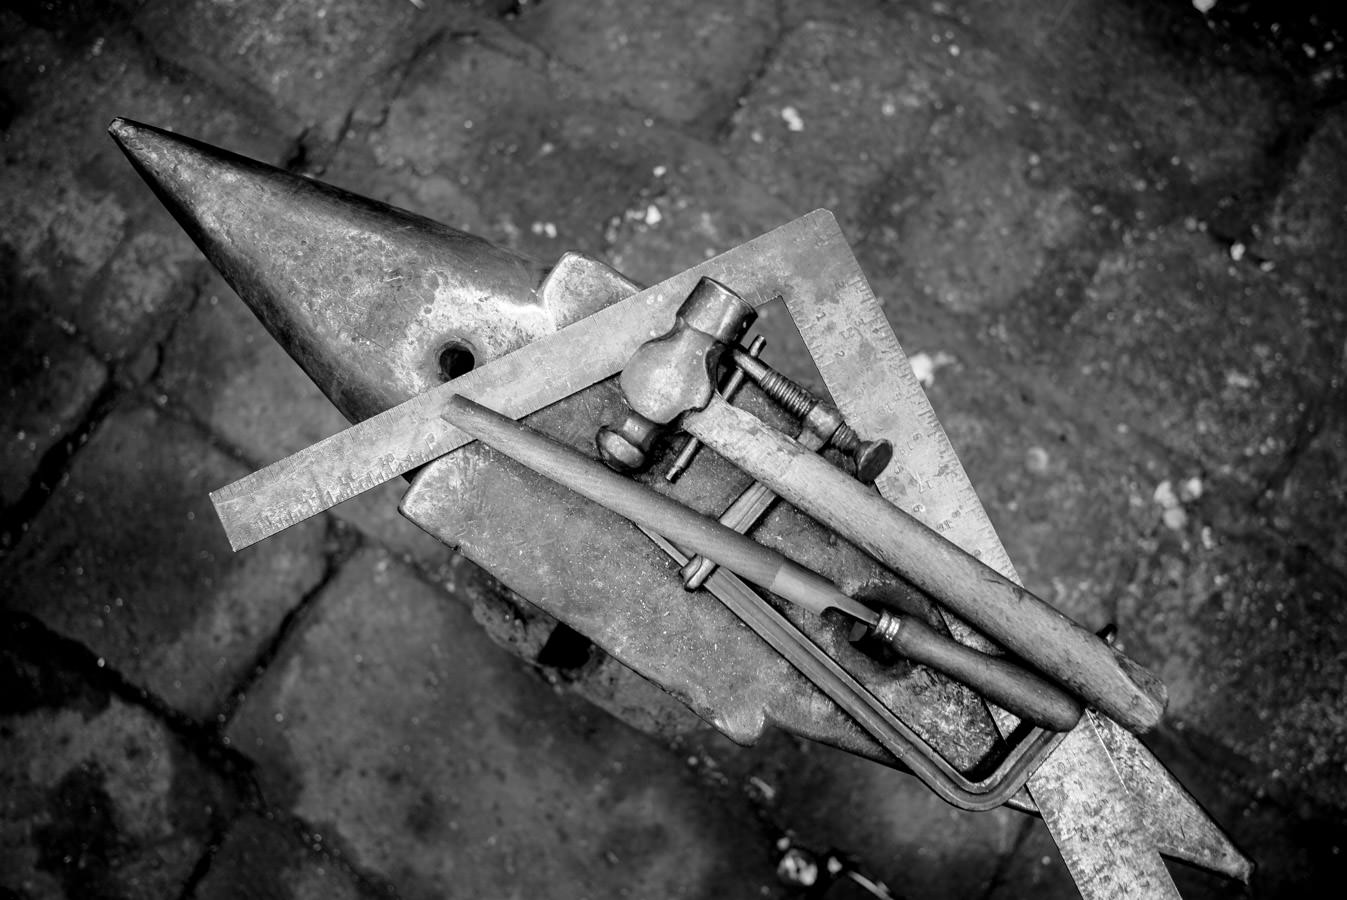 Tools-of-the-blacksmith